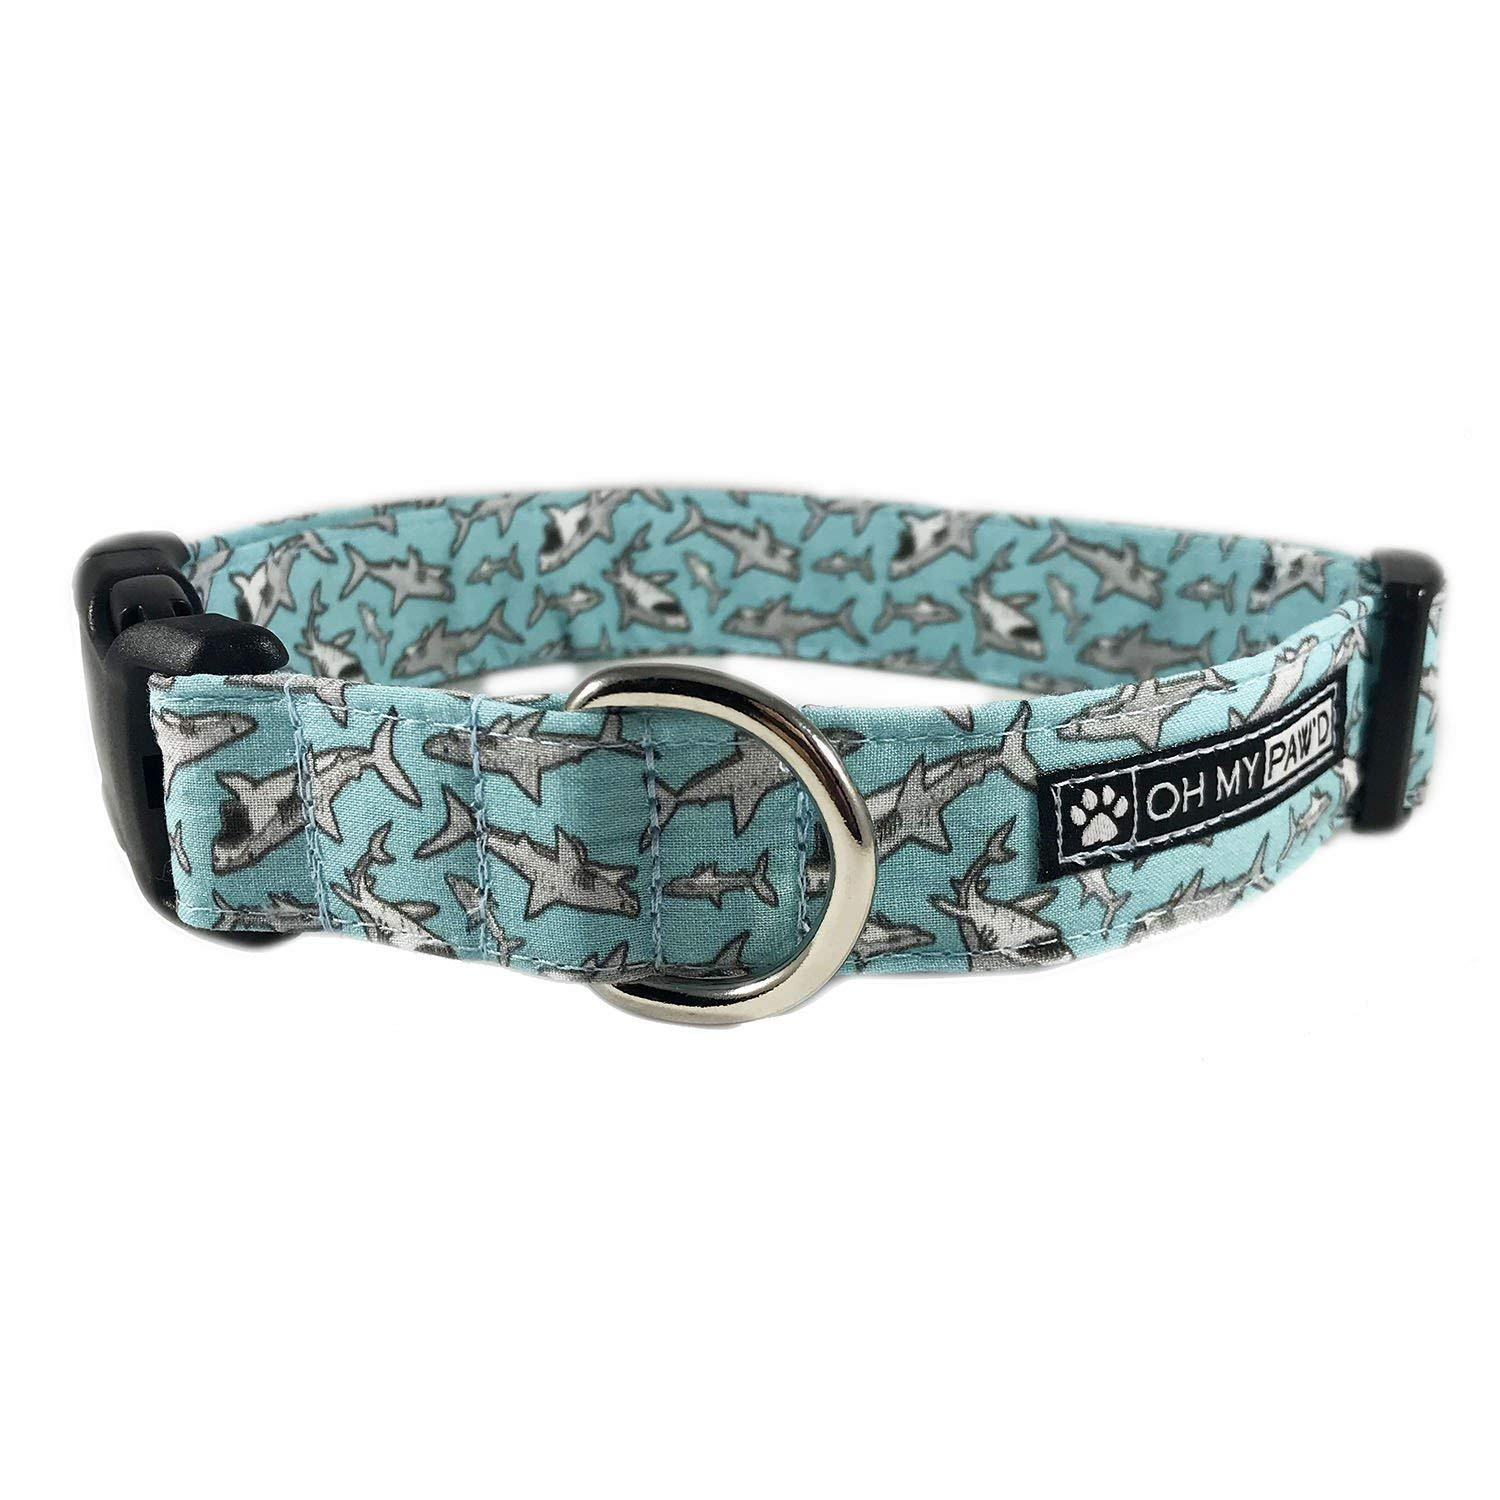 Shark Dog or Cat Collar for Pets Size Large 1